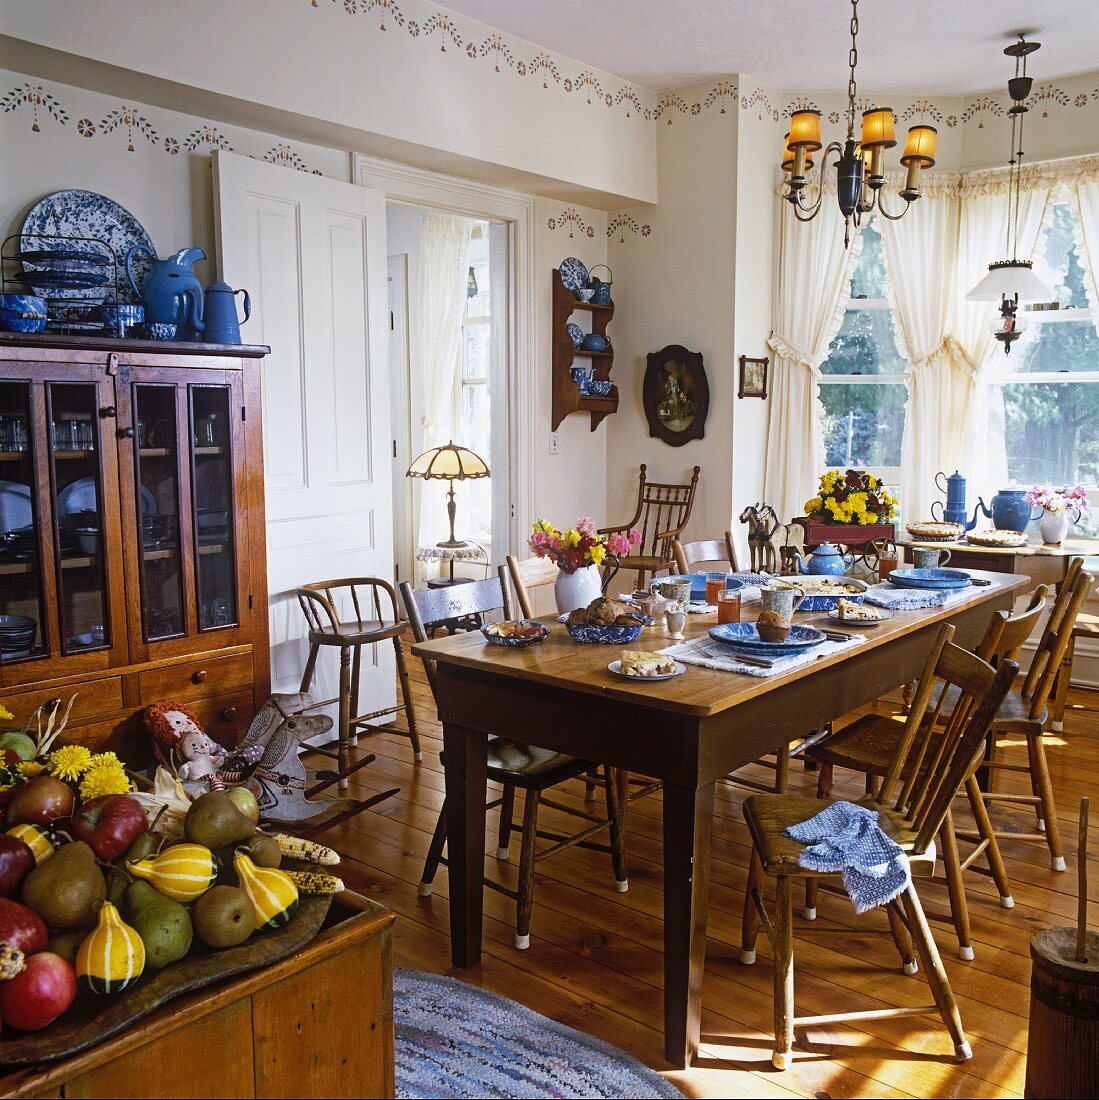 A Victorian dining room in a country house